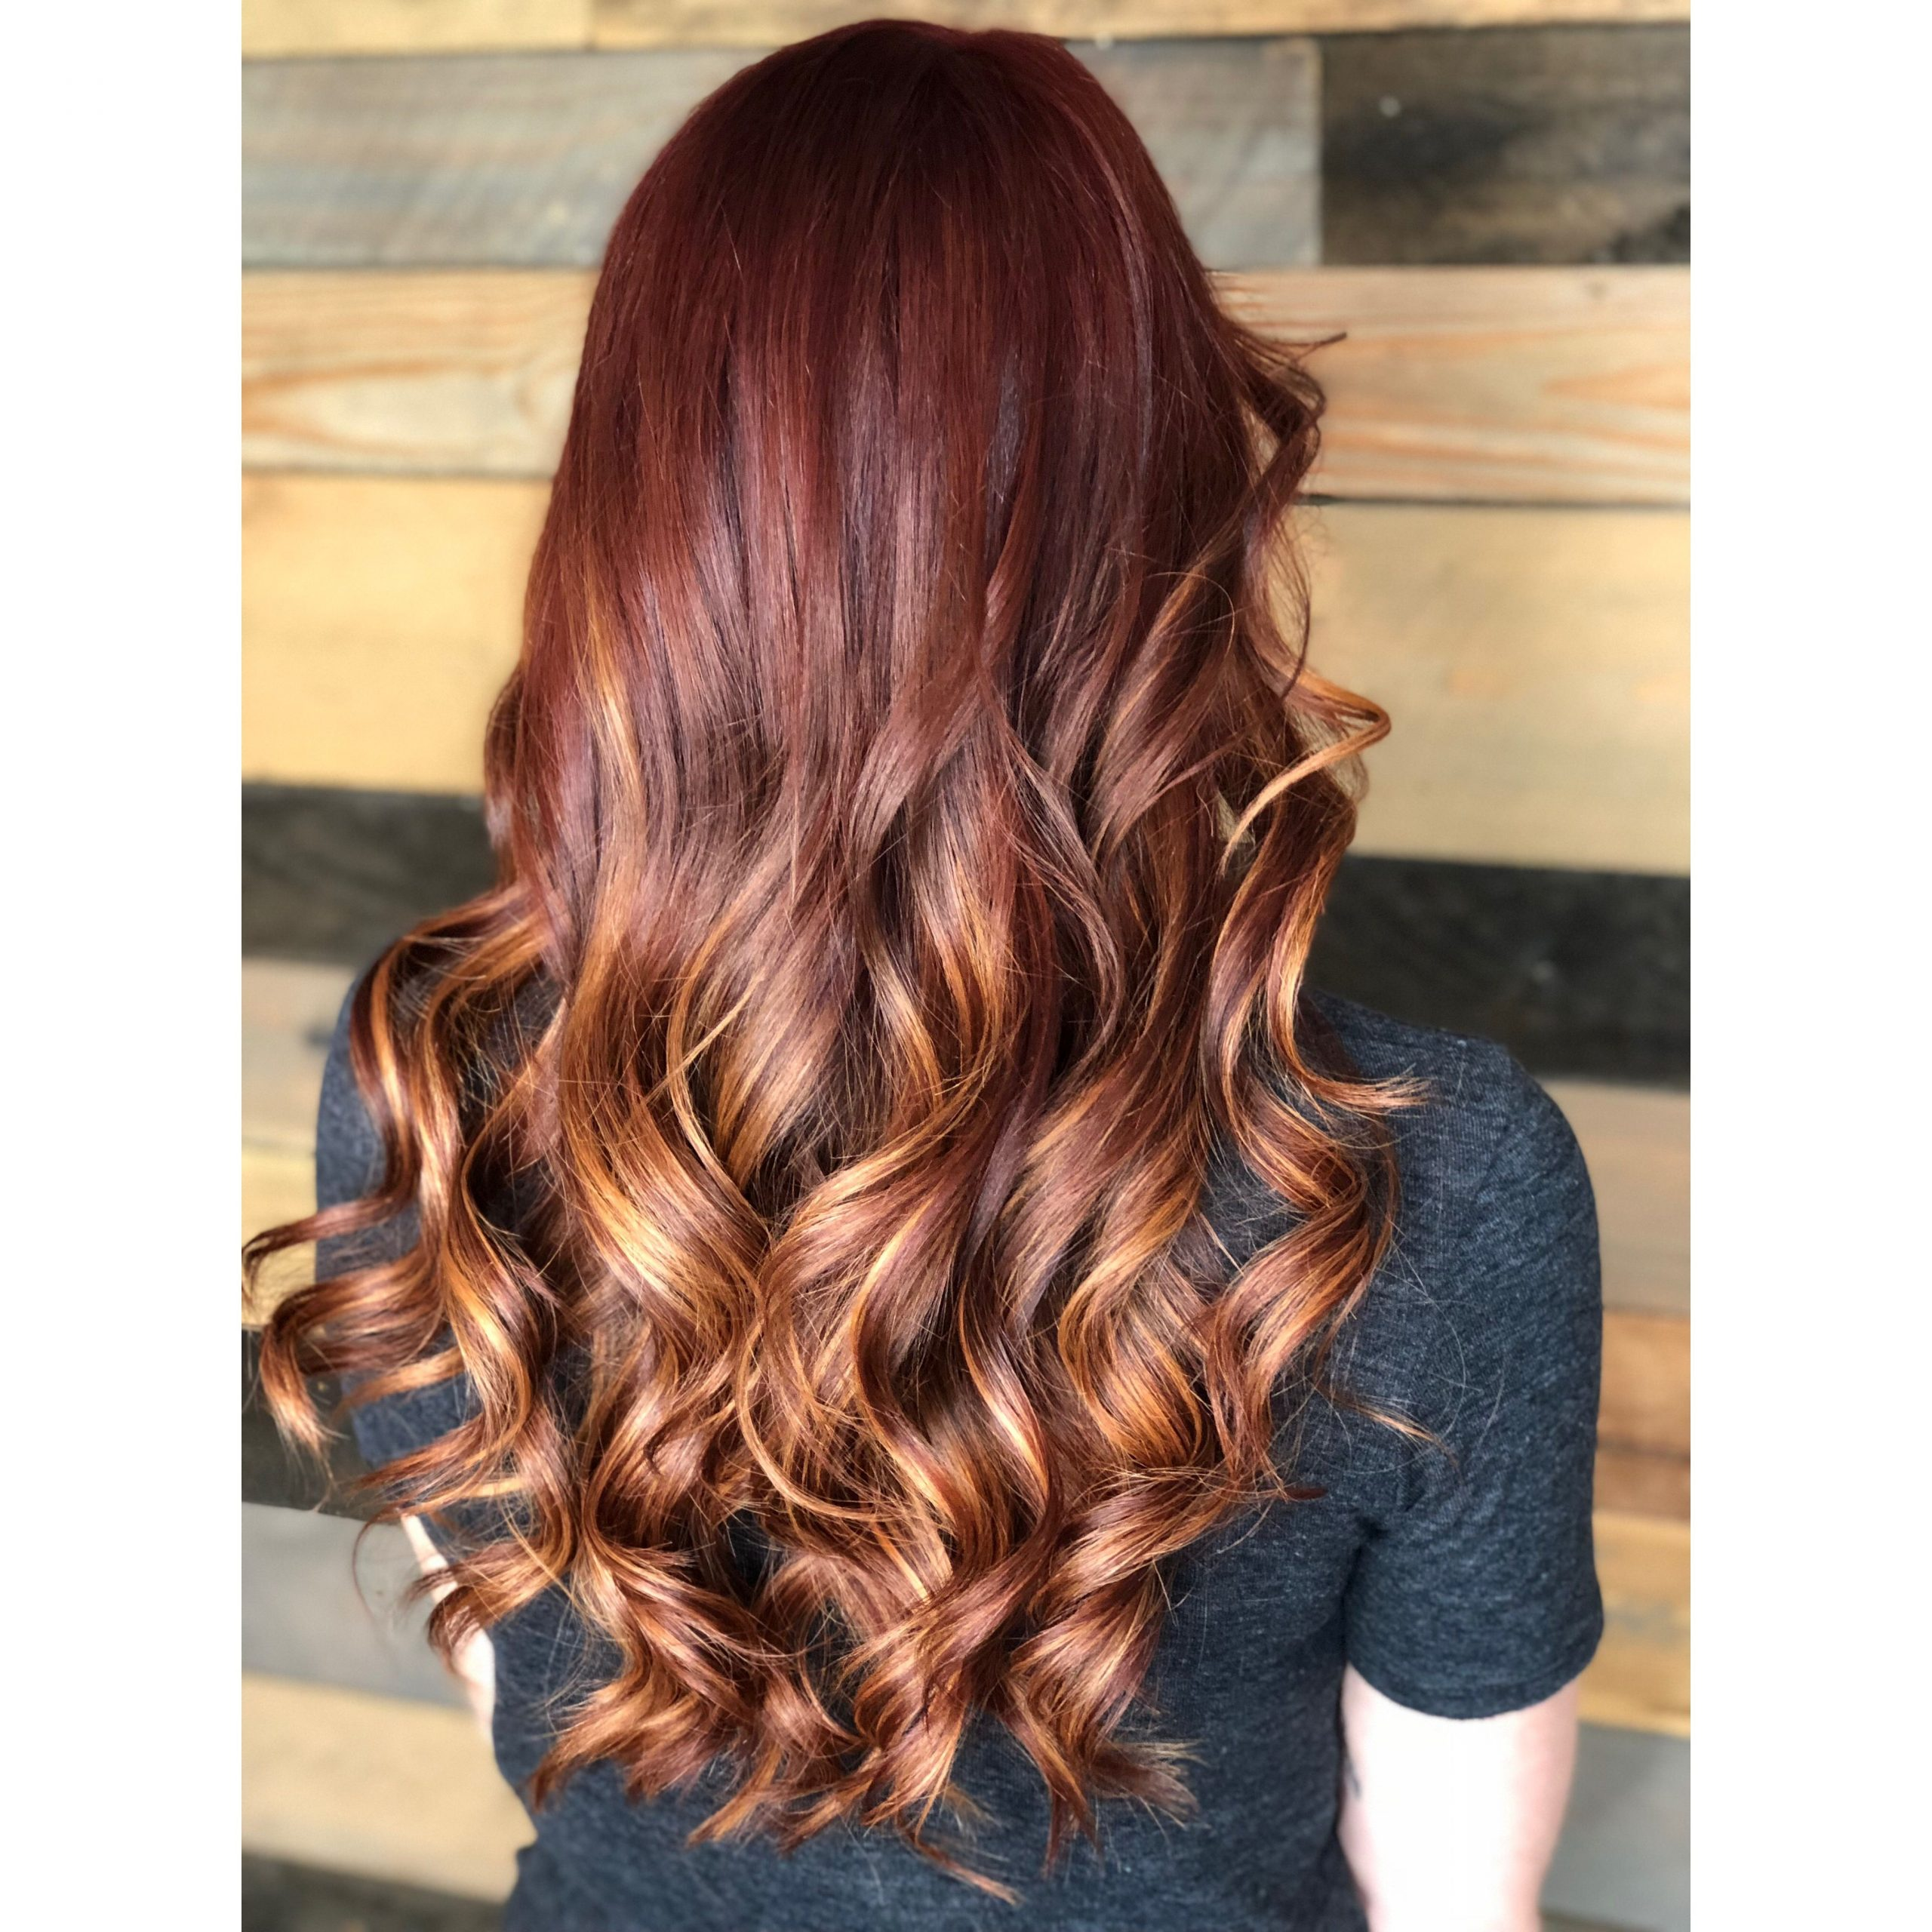 Most Recently Released Copper Curls Balayage Hairstyles Inside Red And Copper Balayage Highlights Hair @hairbychauntel (View 6 of 20)